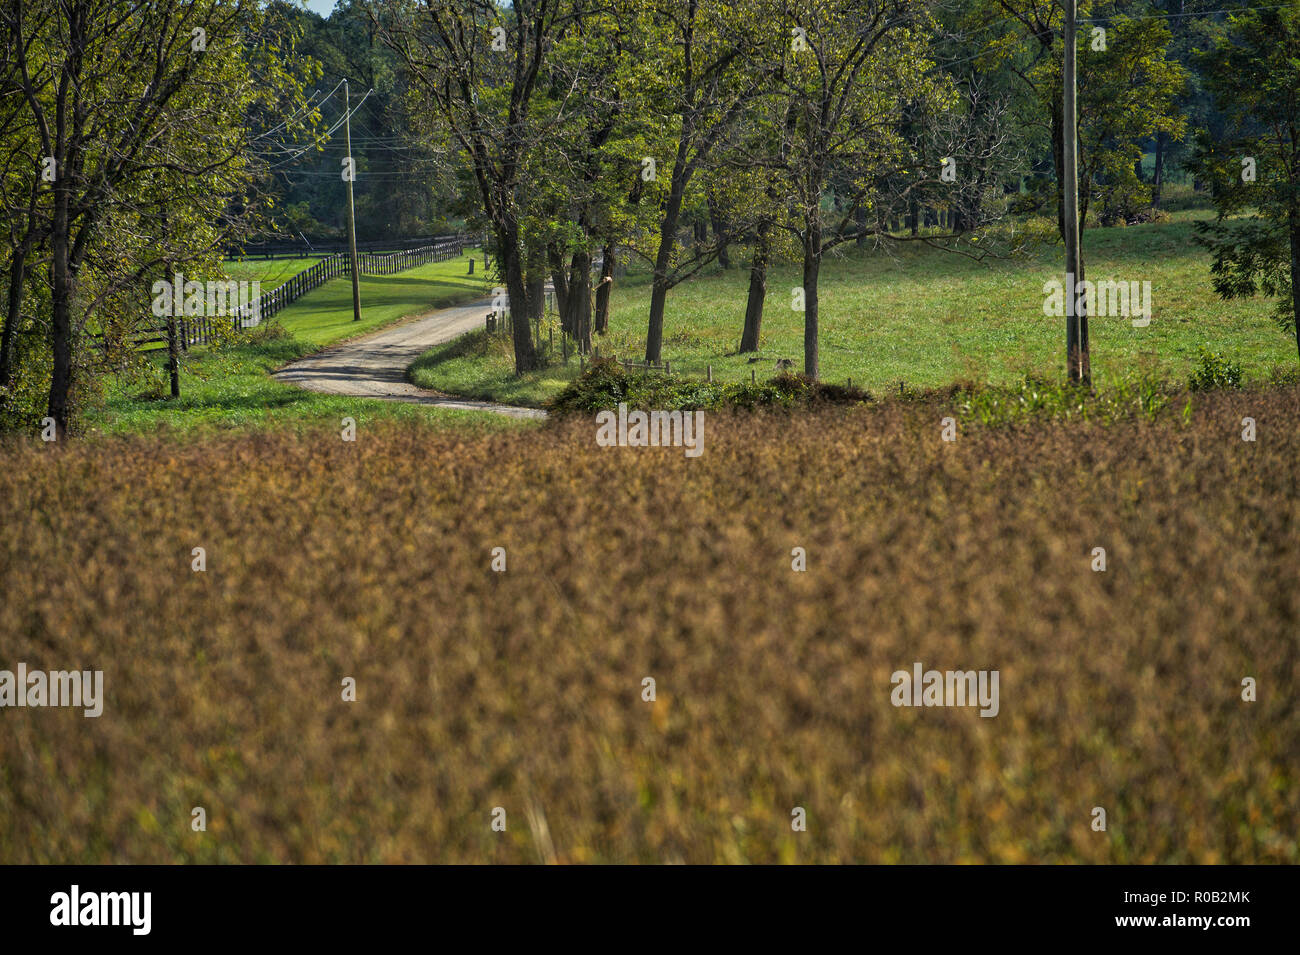 UNITED STATES - June 4, 2017: Western Loudoun's historic dirt road known as Trappe Road outside of the Village of Bloomfield. Many of the dirt roads i - Stock Image